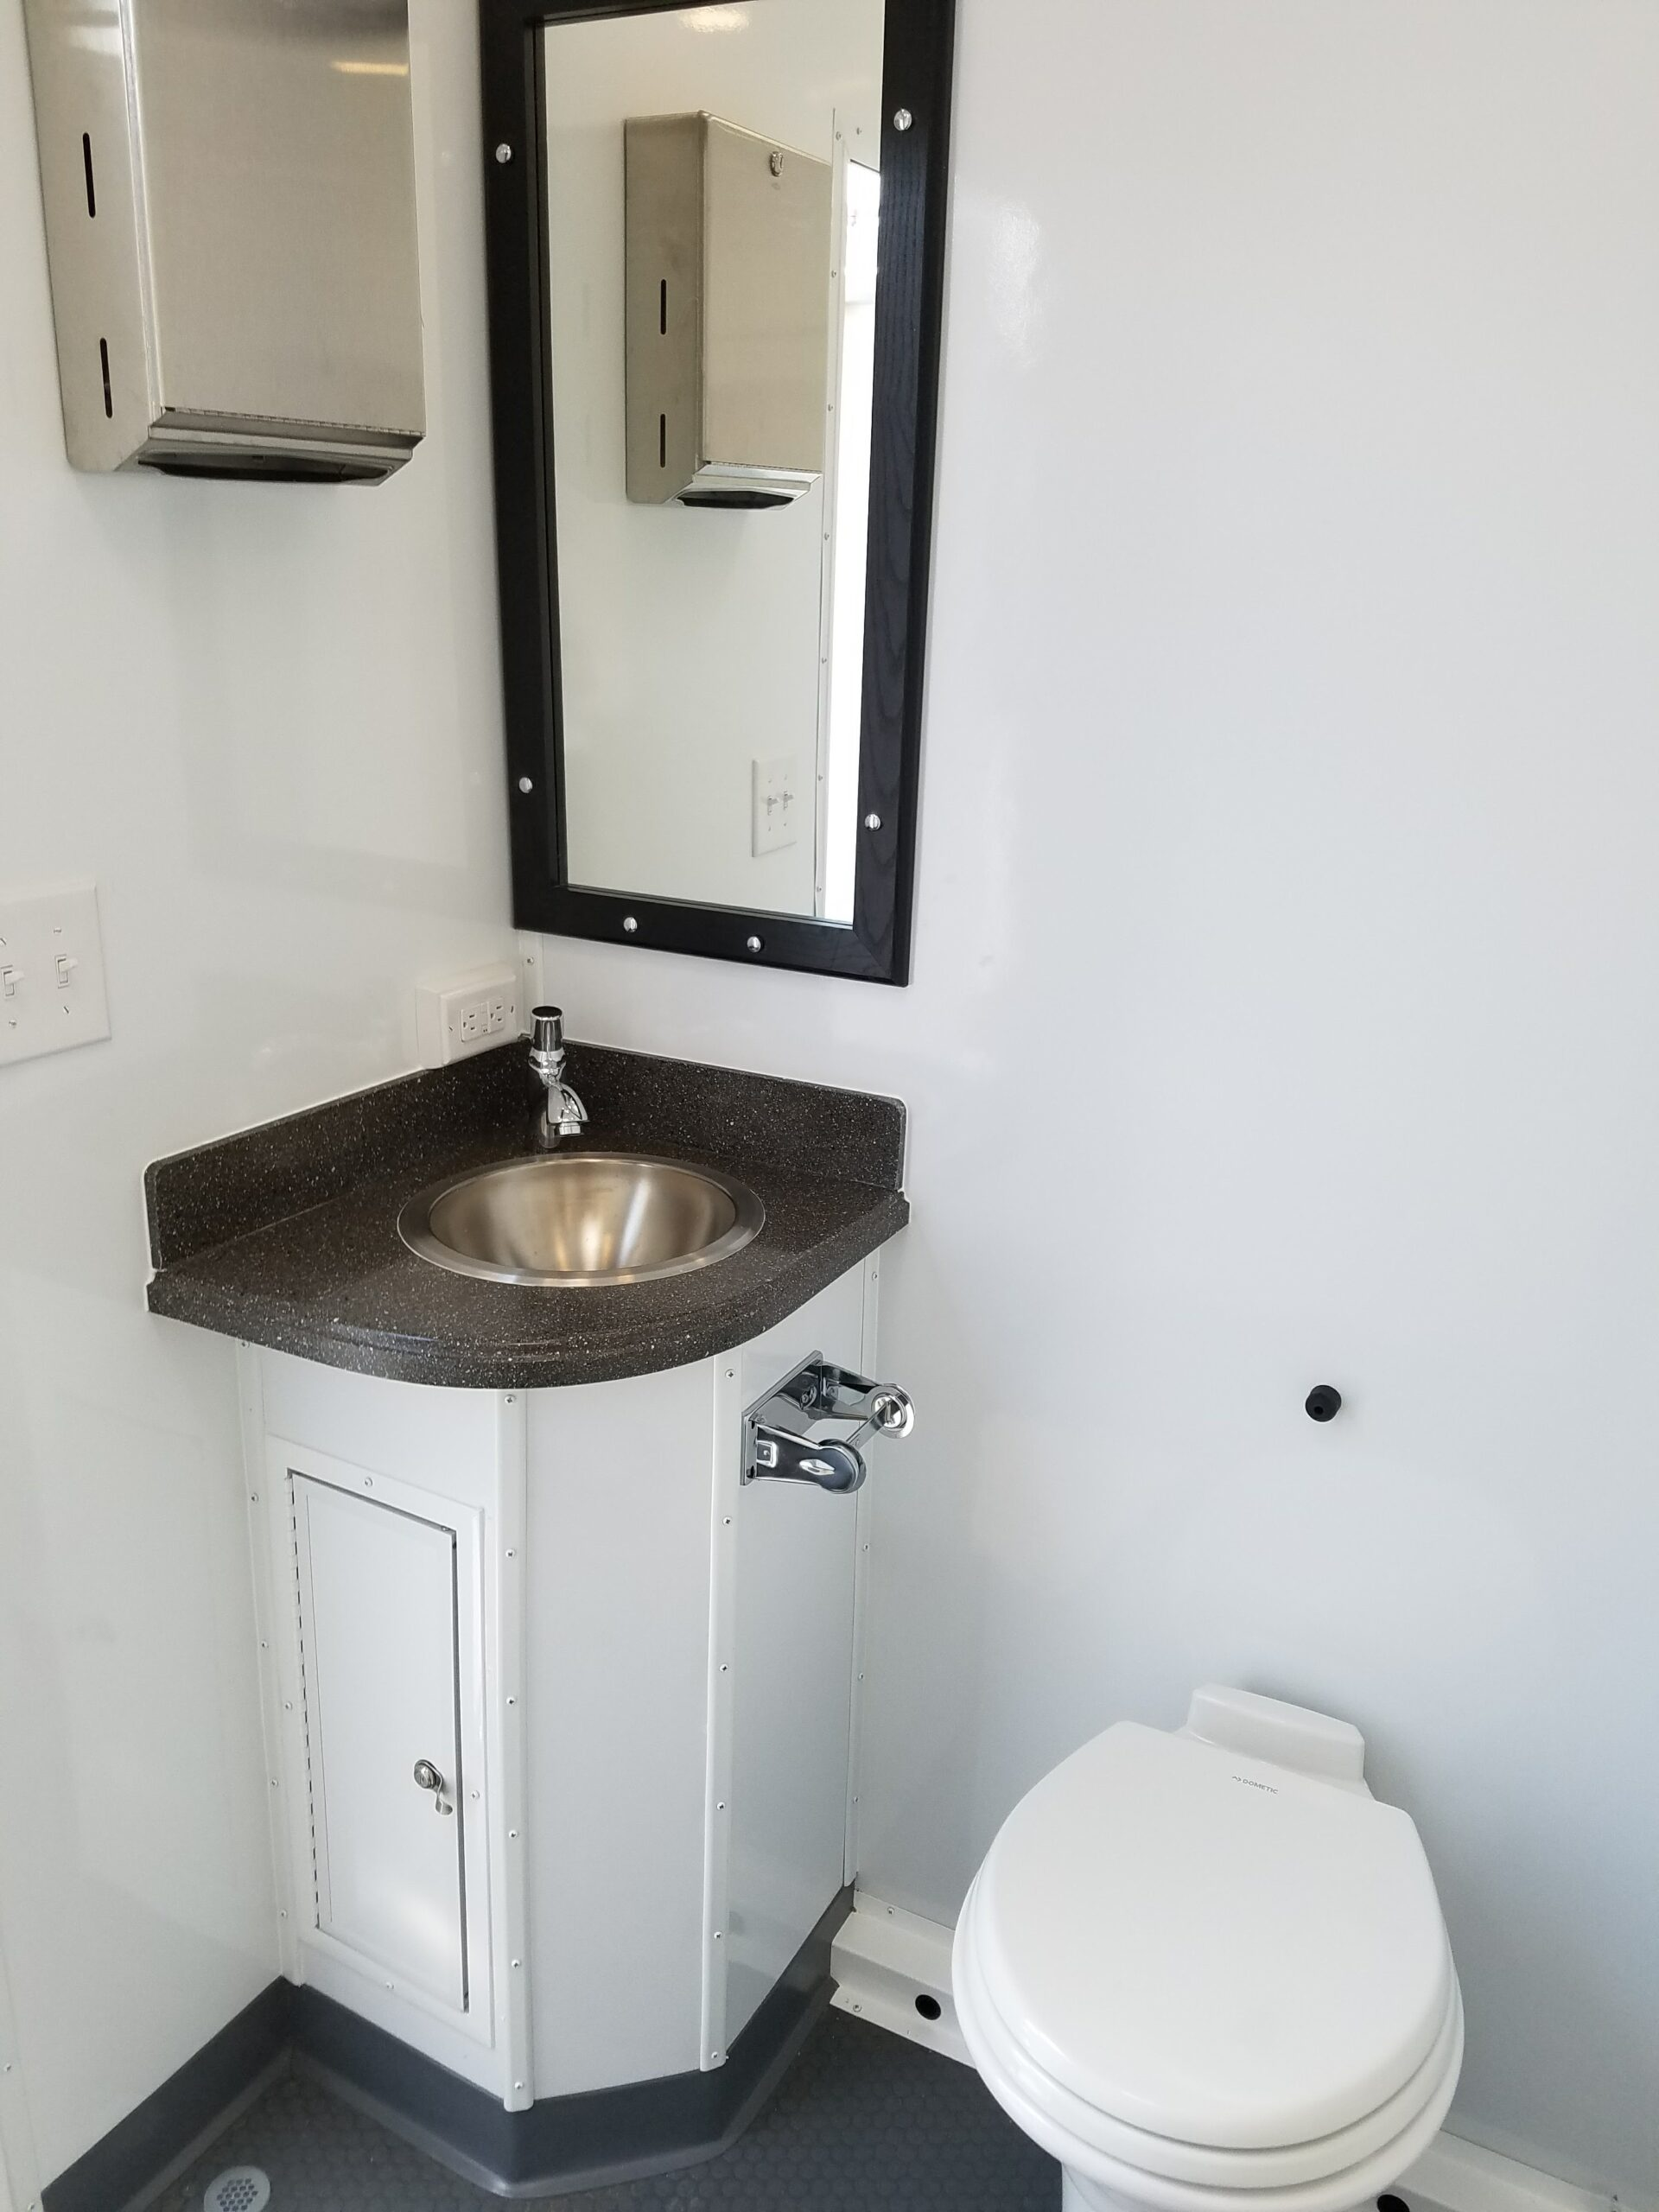 Inside view of 3 station restroom shower combo with one sink